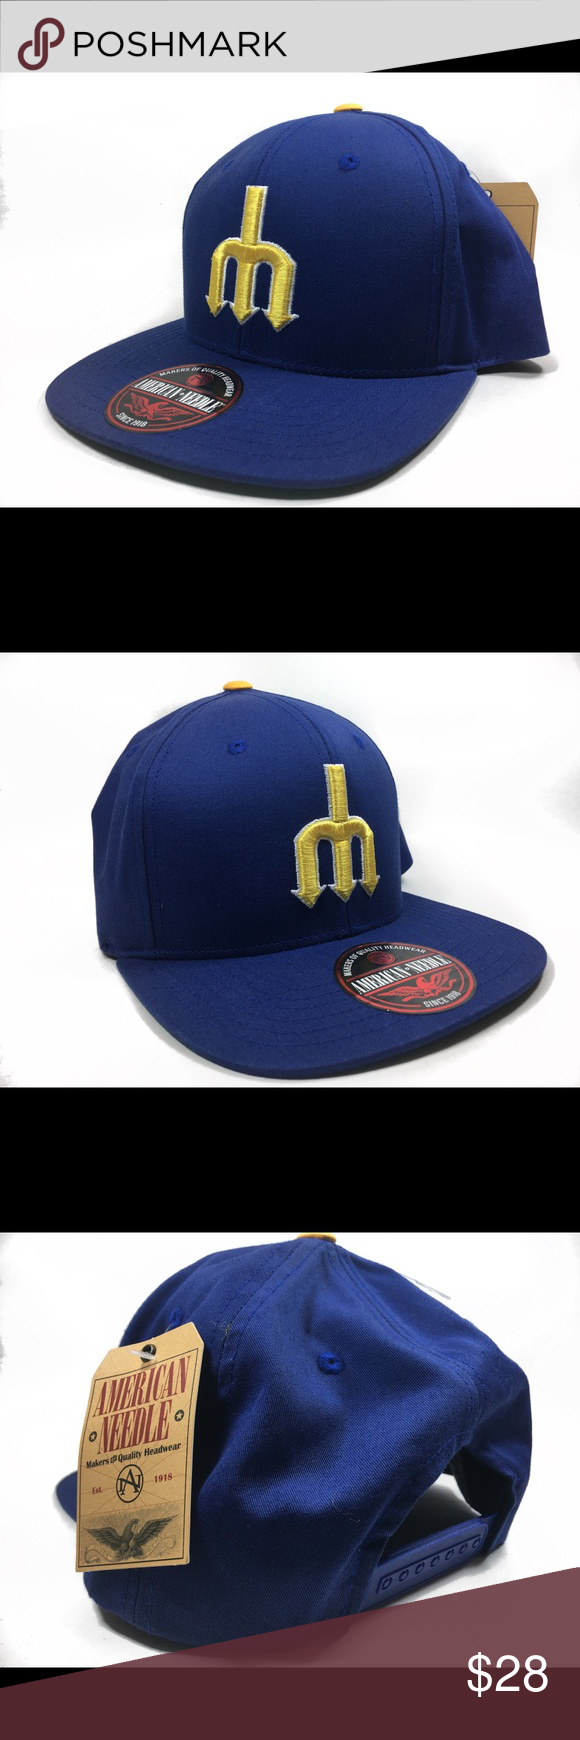 76536ae0 American Needle Vtg Seattle Mariners Snapback Hat New with tags American  Needle Accessories Hats